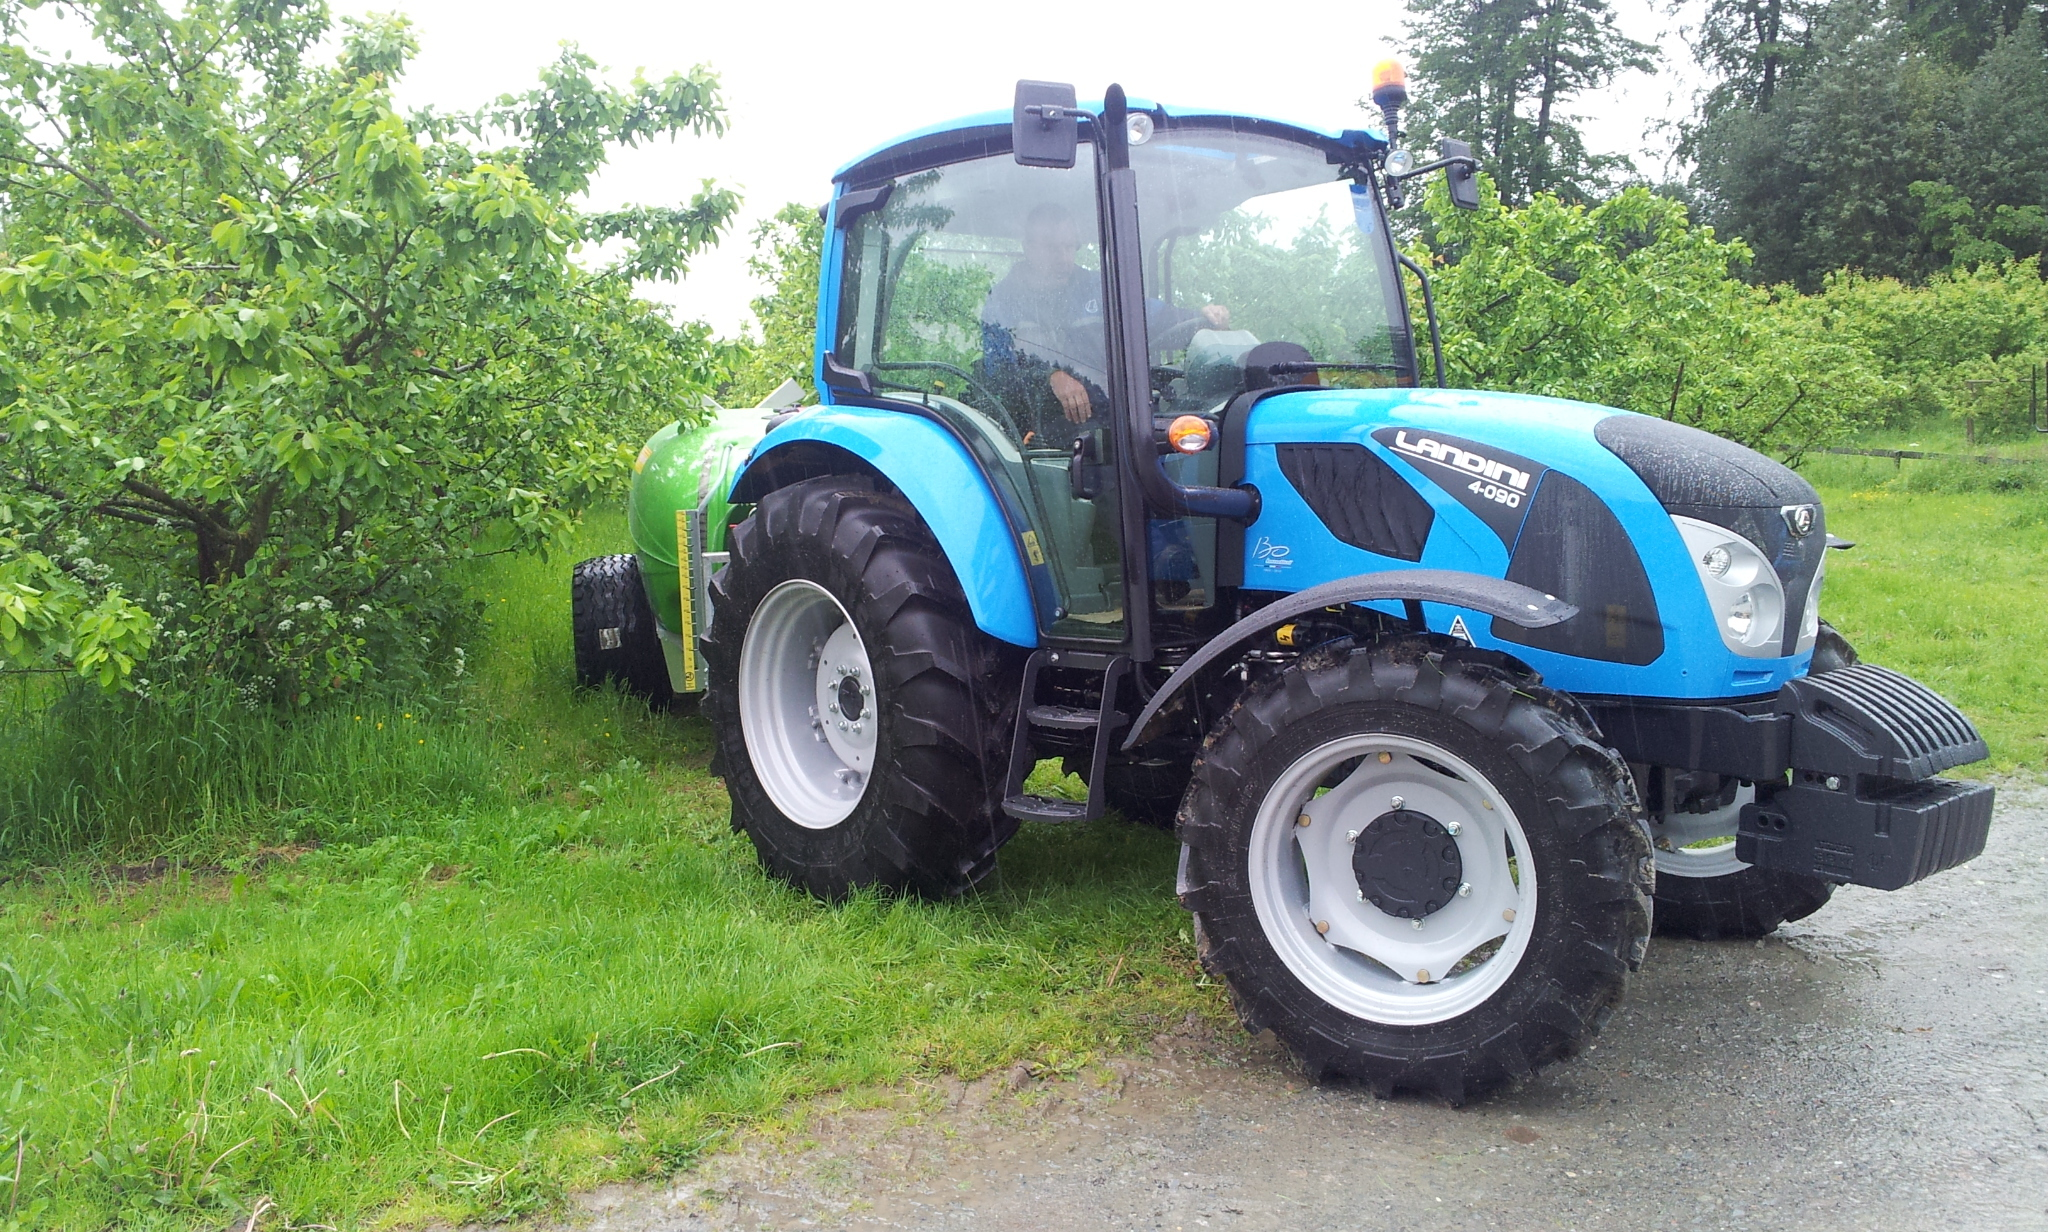 A tractor from the new Landini 4 Series range